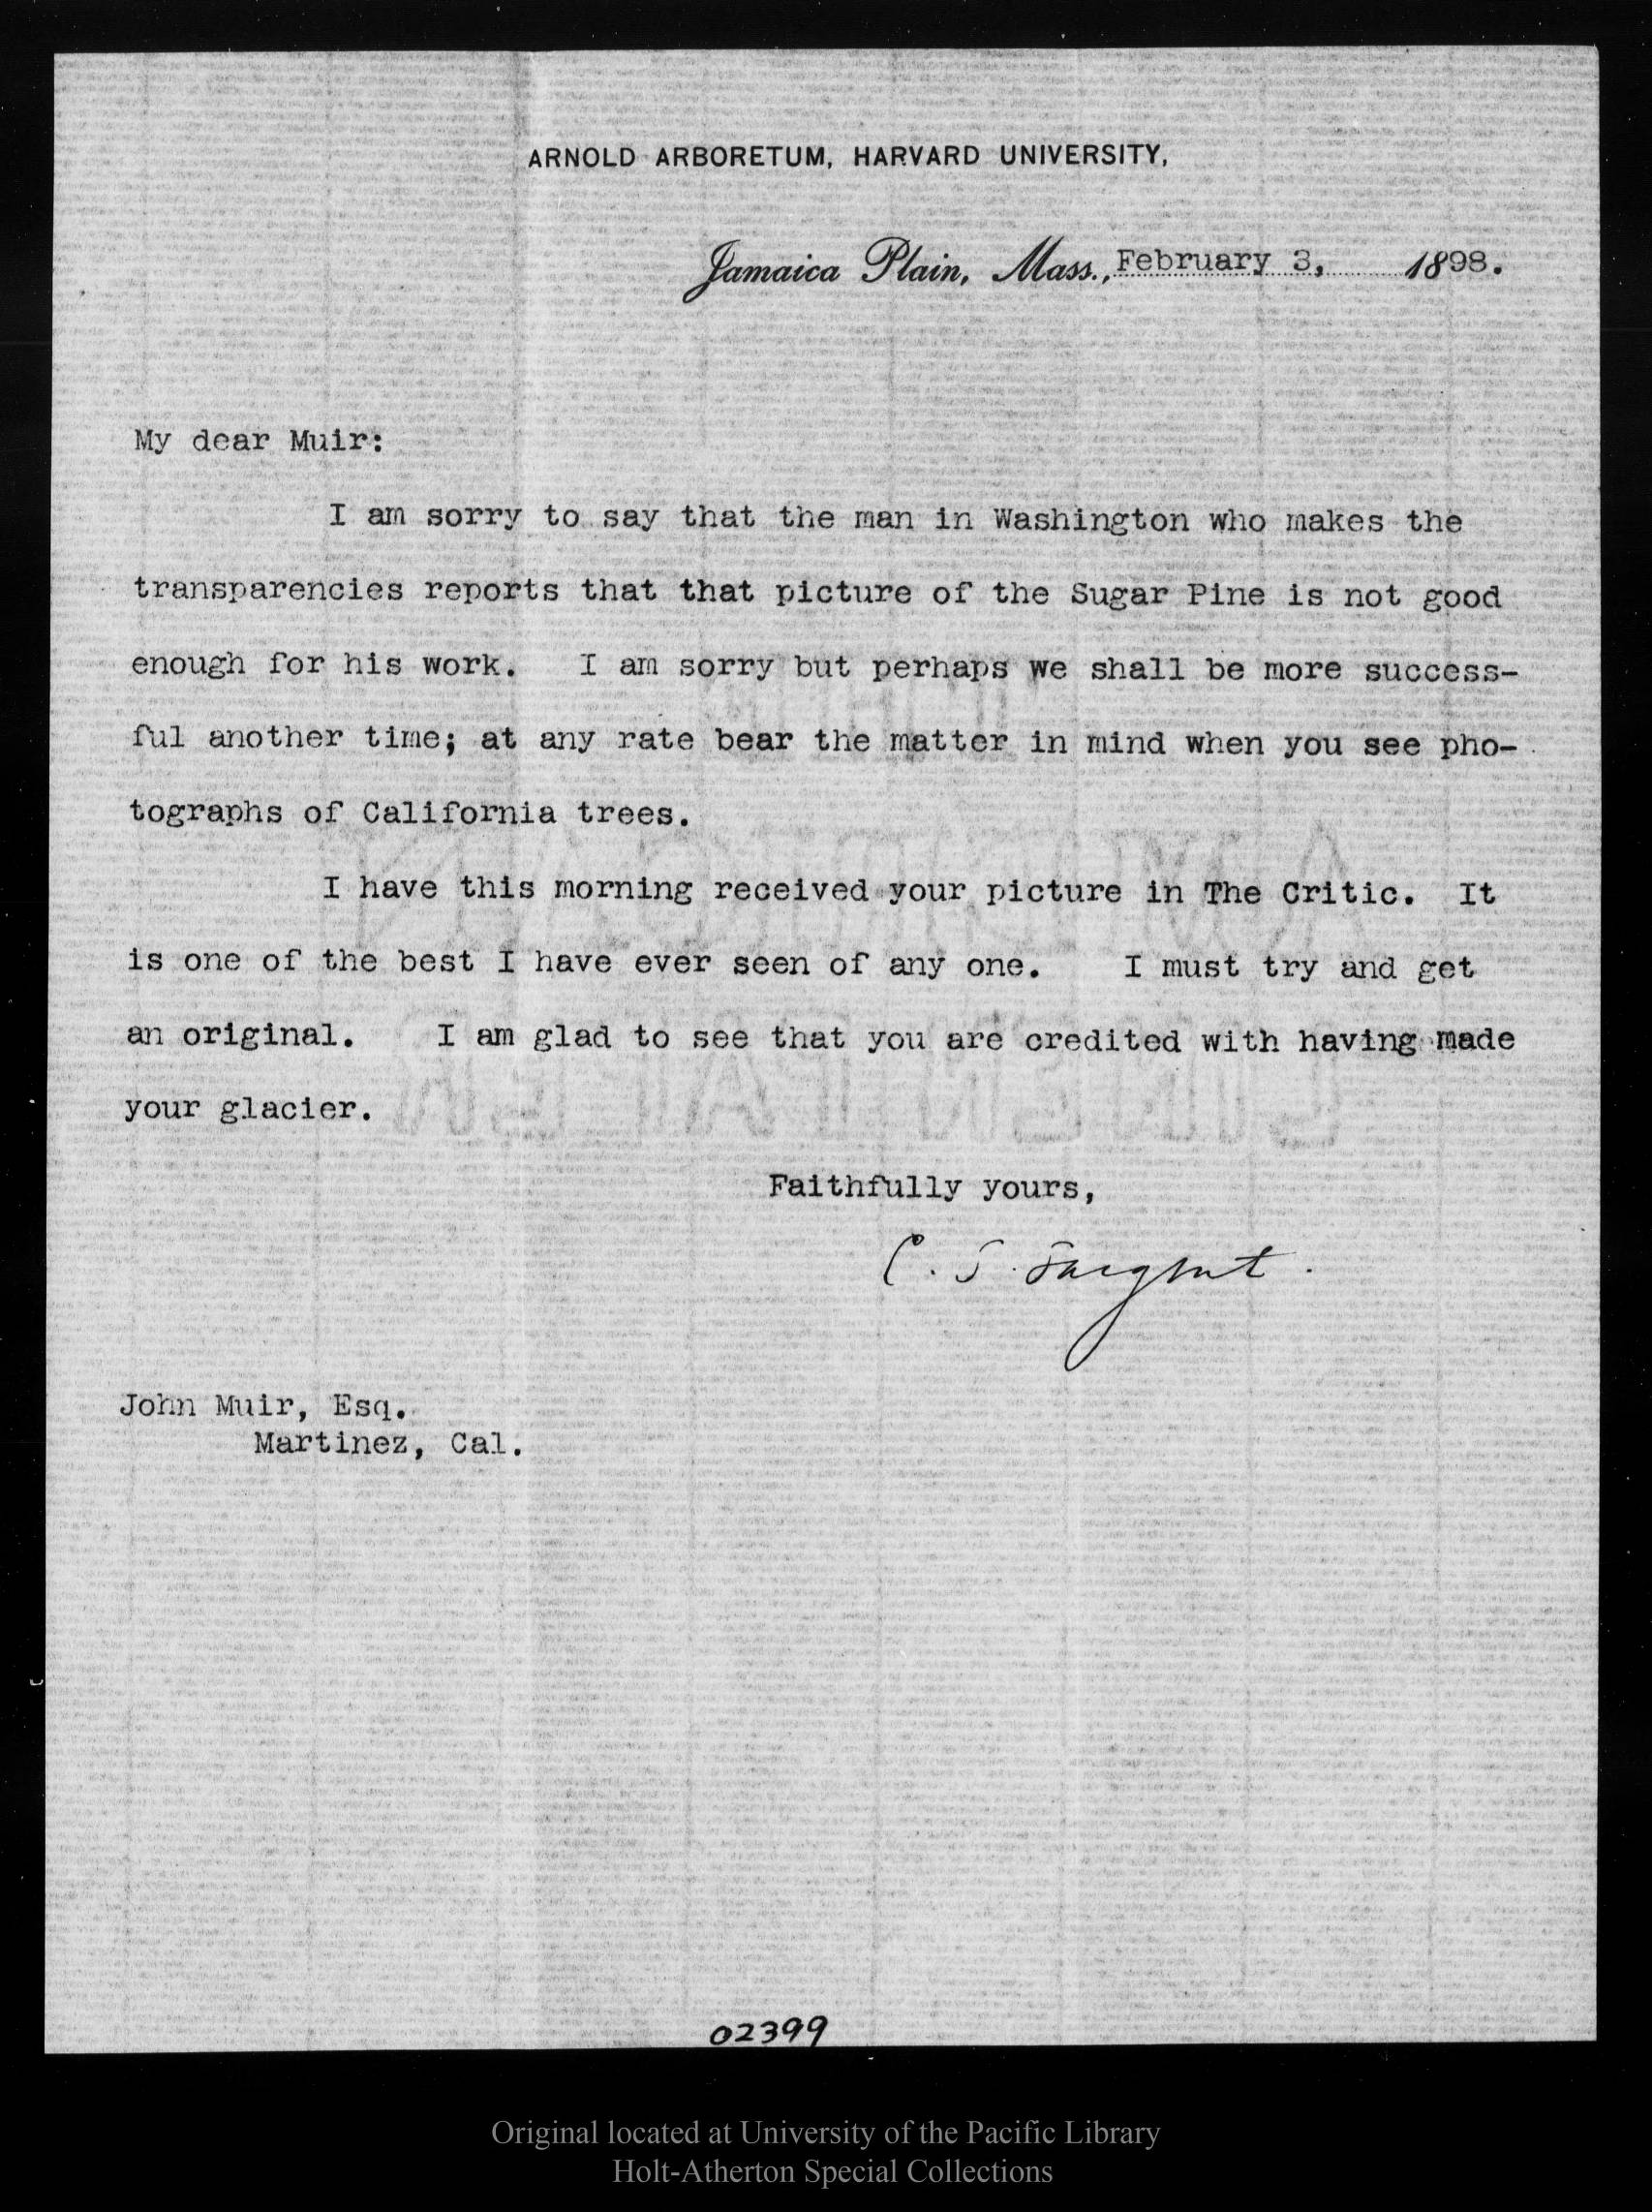 Letter from Charles Sprague Sargent to John Muir 1898 Feb 3